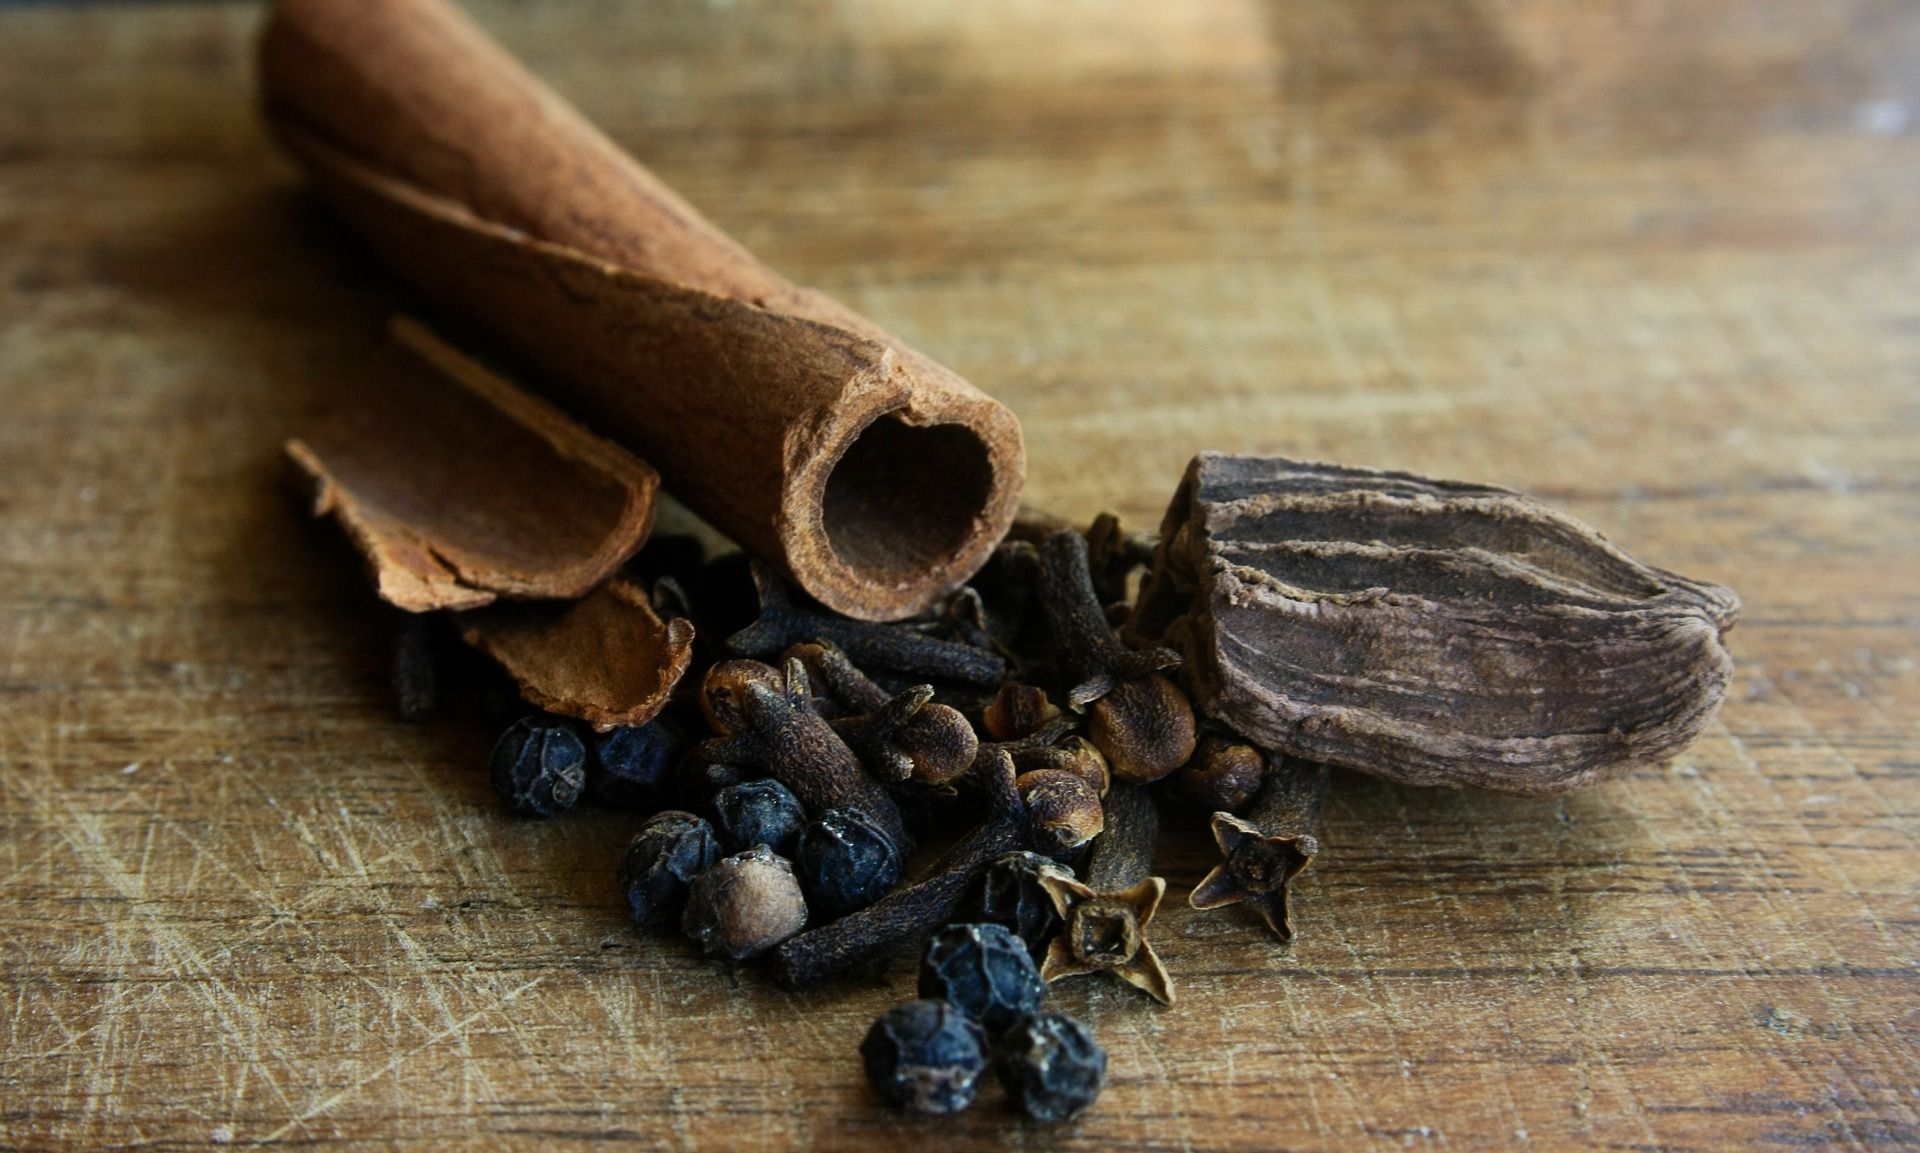 3 Surprisingly Cancer Fighting Herbs From The Kitchen Healthy U Turn Spices Cinnamon Bark Essential Oil Indian Spices